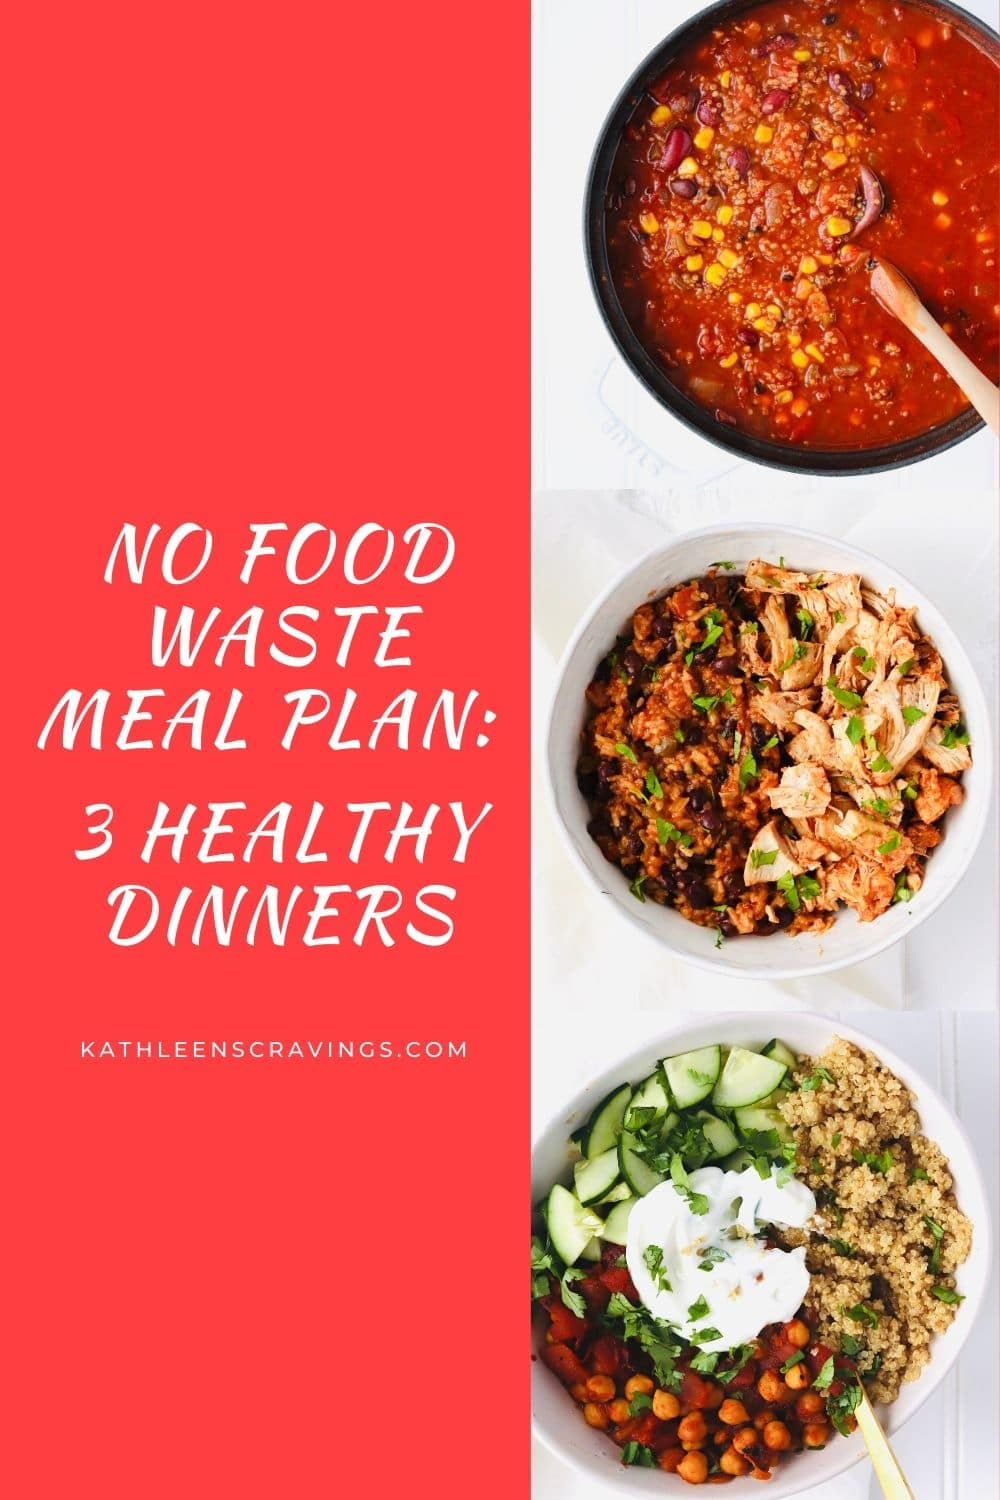 No Food Waste Meal Plans allow you to make delicious, everyday recipes without worrying about leftover ingredients. One Master Grocery List to help you Shop Smarter. 3 Healthy Dinners: Instant Pot Salsa Chicken and Rice, Moroccan Chickpea Bowls, and Vegan Quinoa Chili.